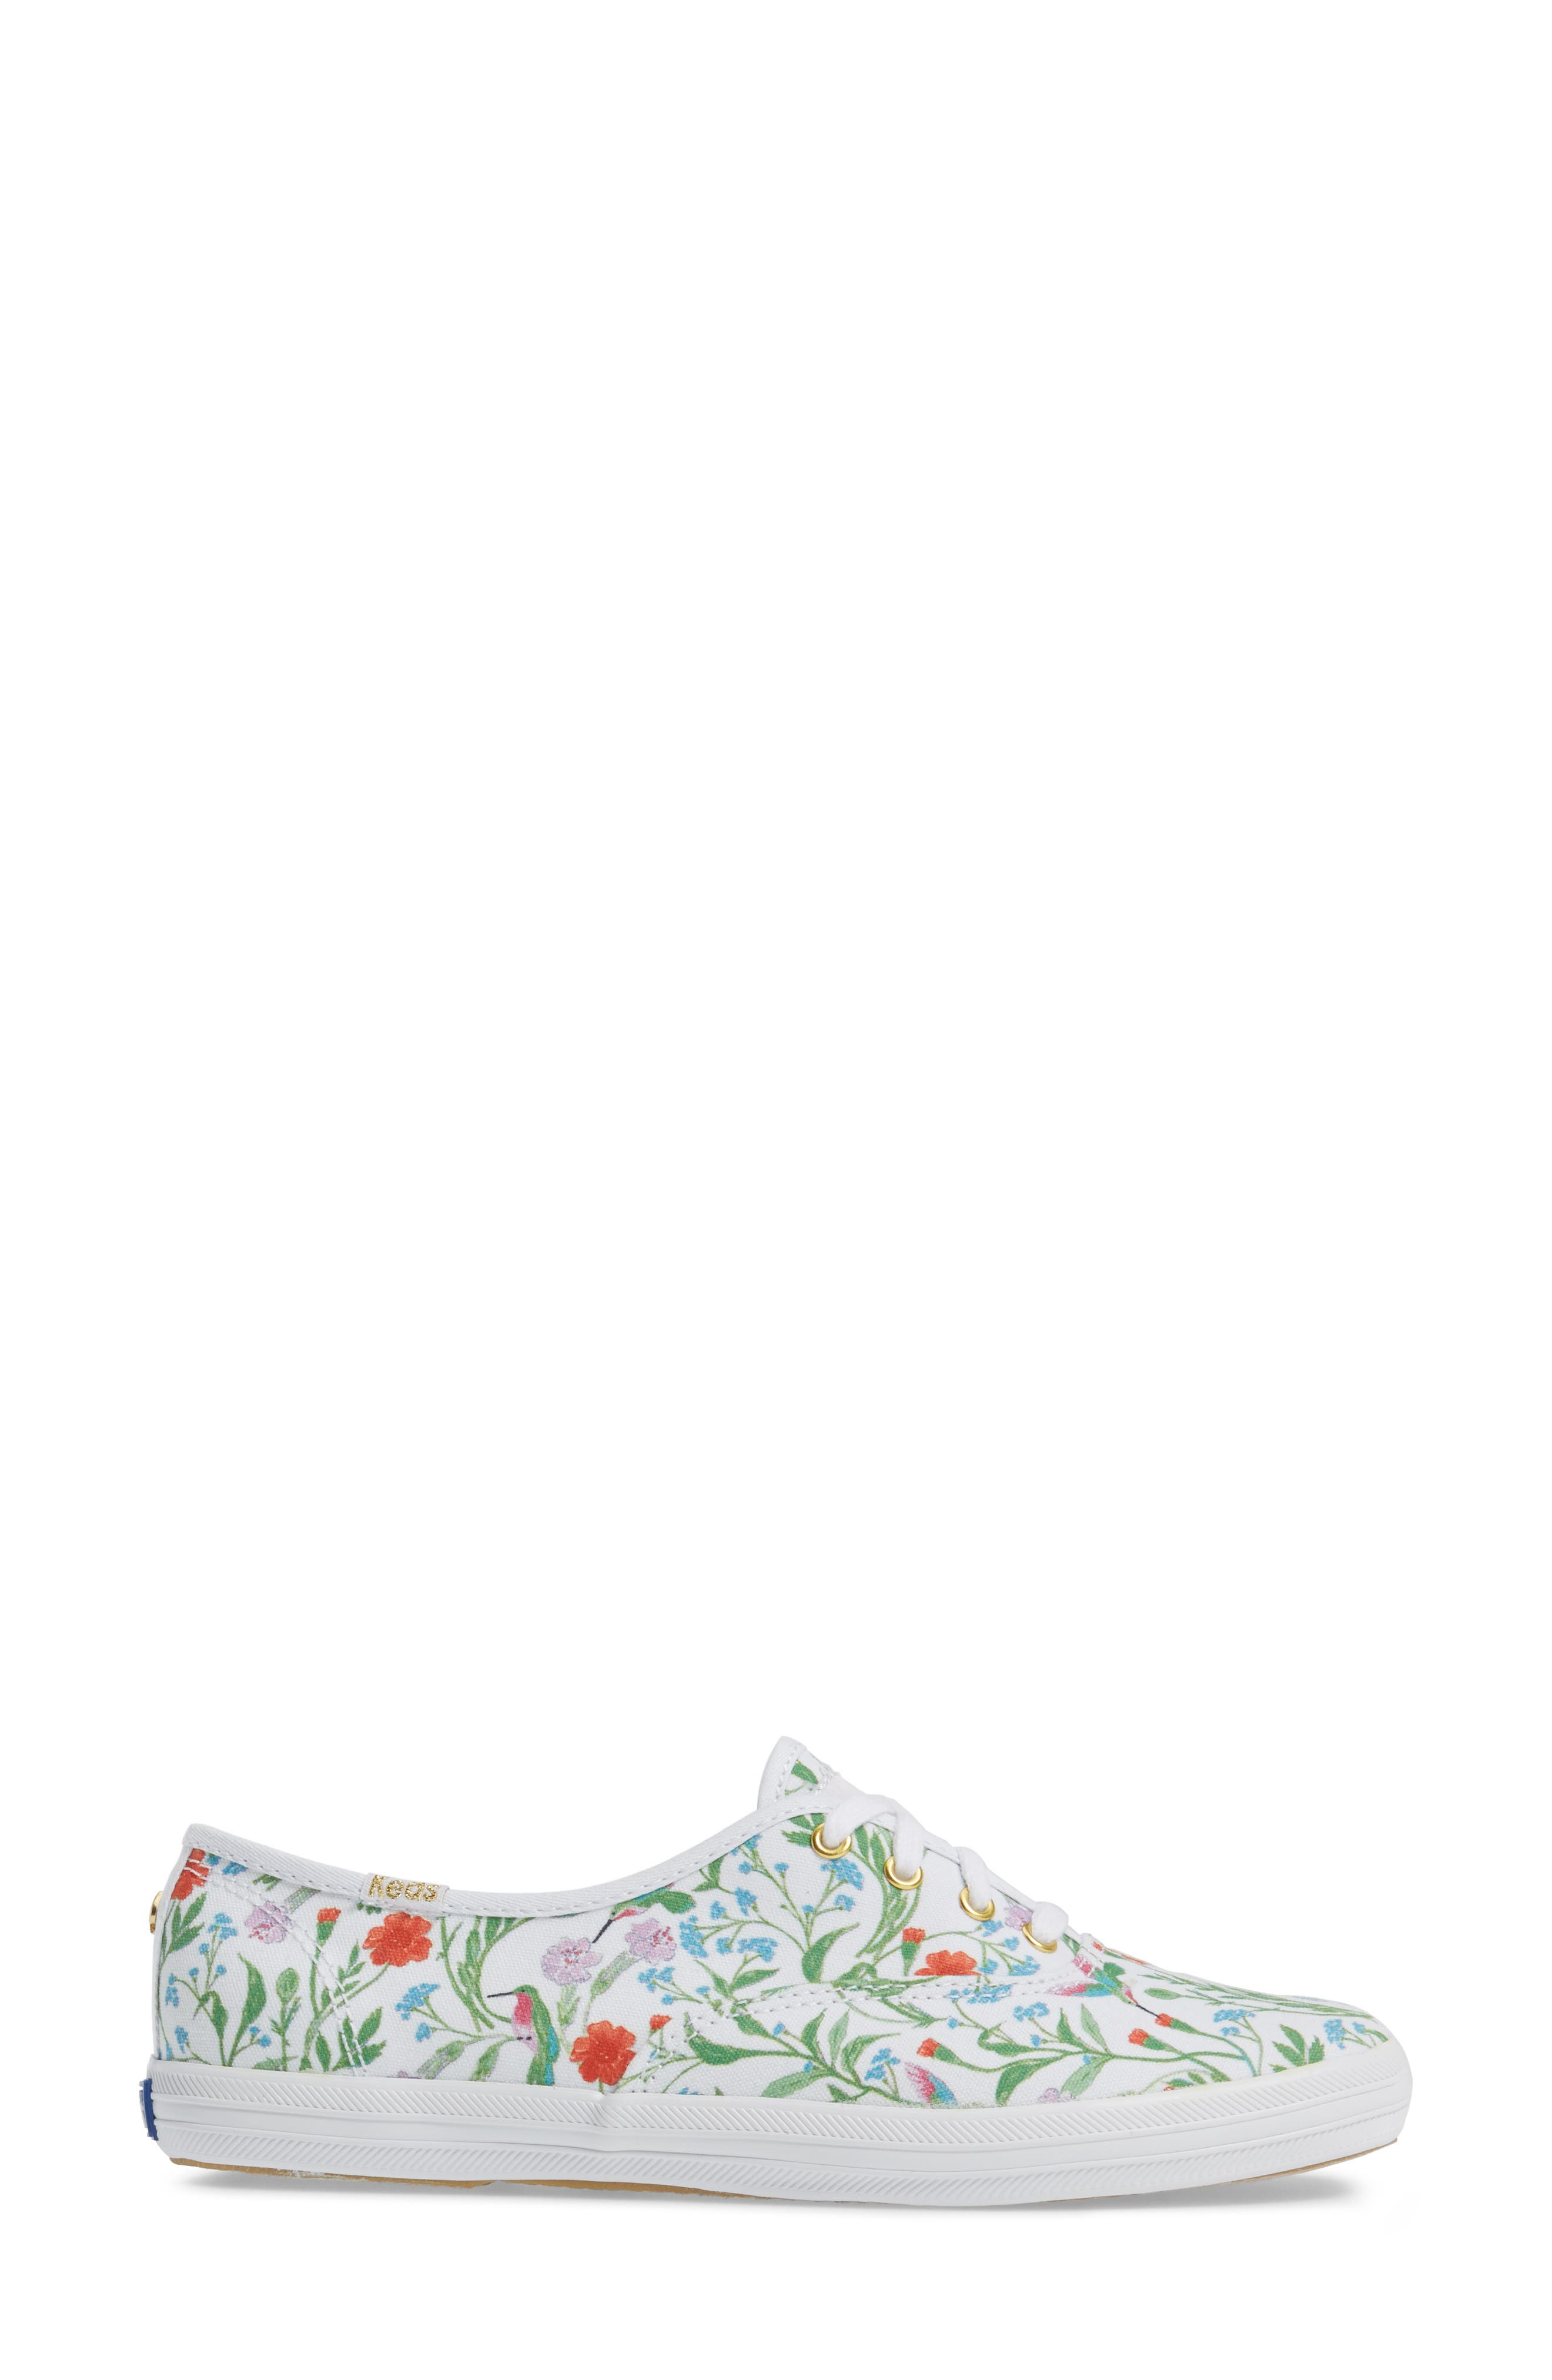 Keds<sup>®</sup> x kate spade new york champion sneaker,                             Alternate thumbnail 11, color,